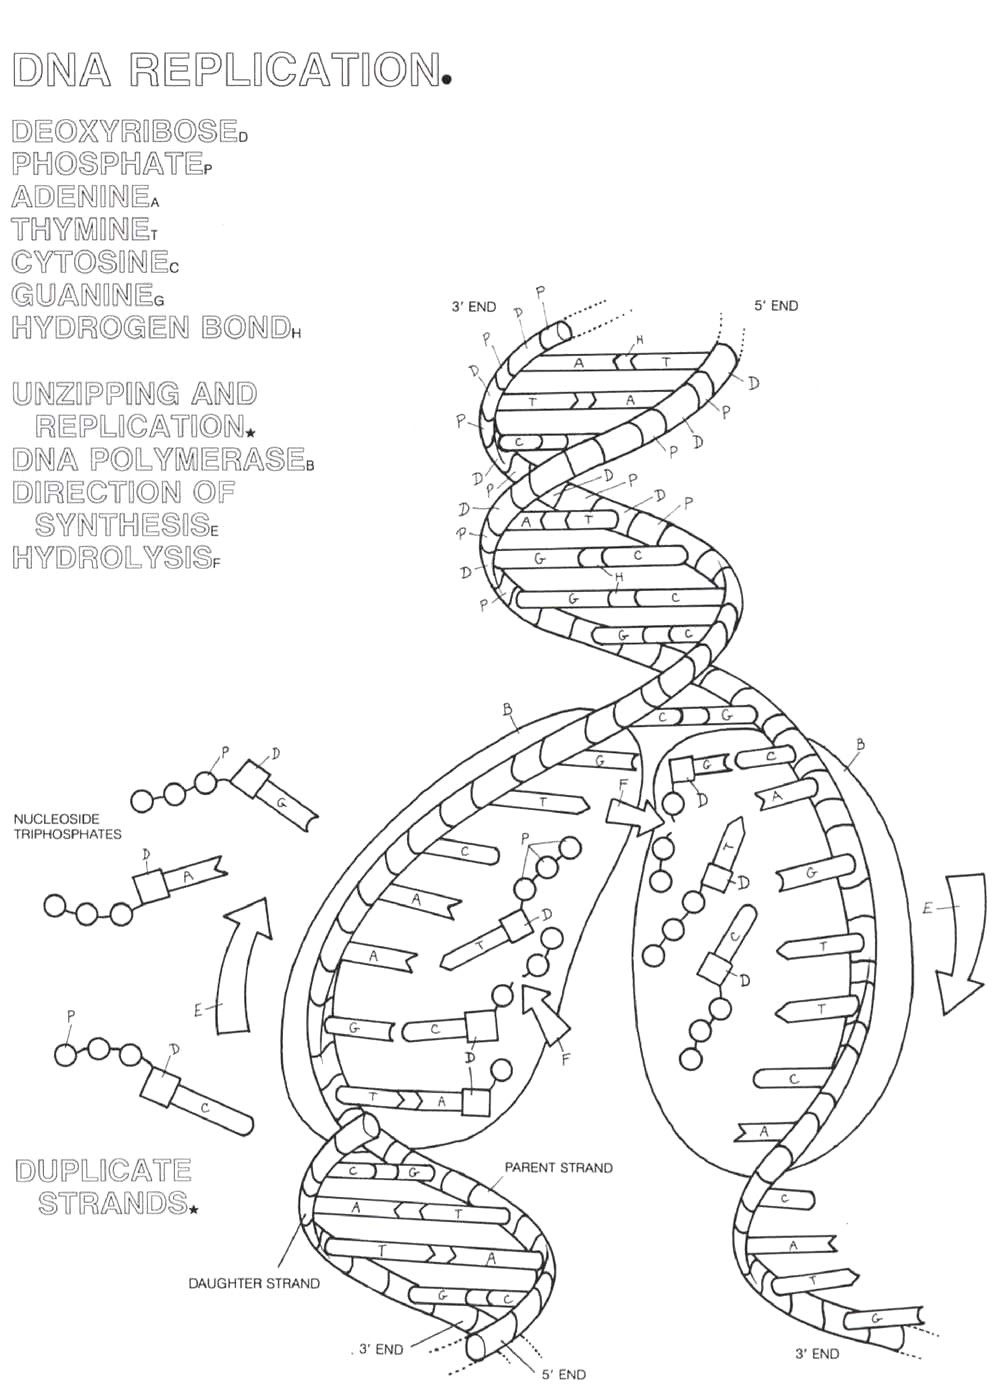 13 Best Images of The DNA Double Helix Coloring Worksheet ...